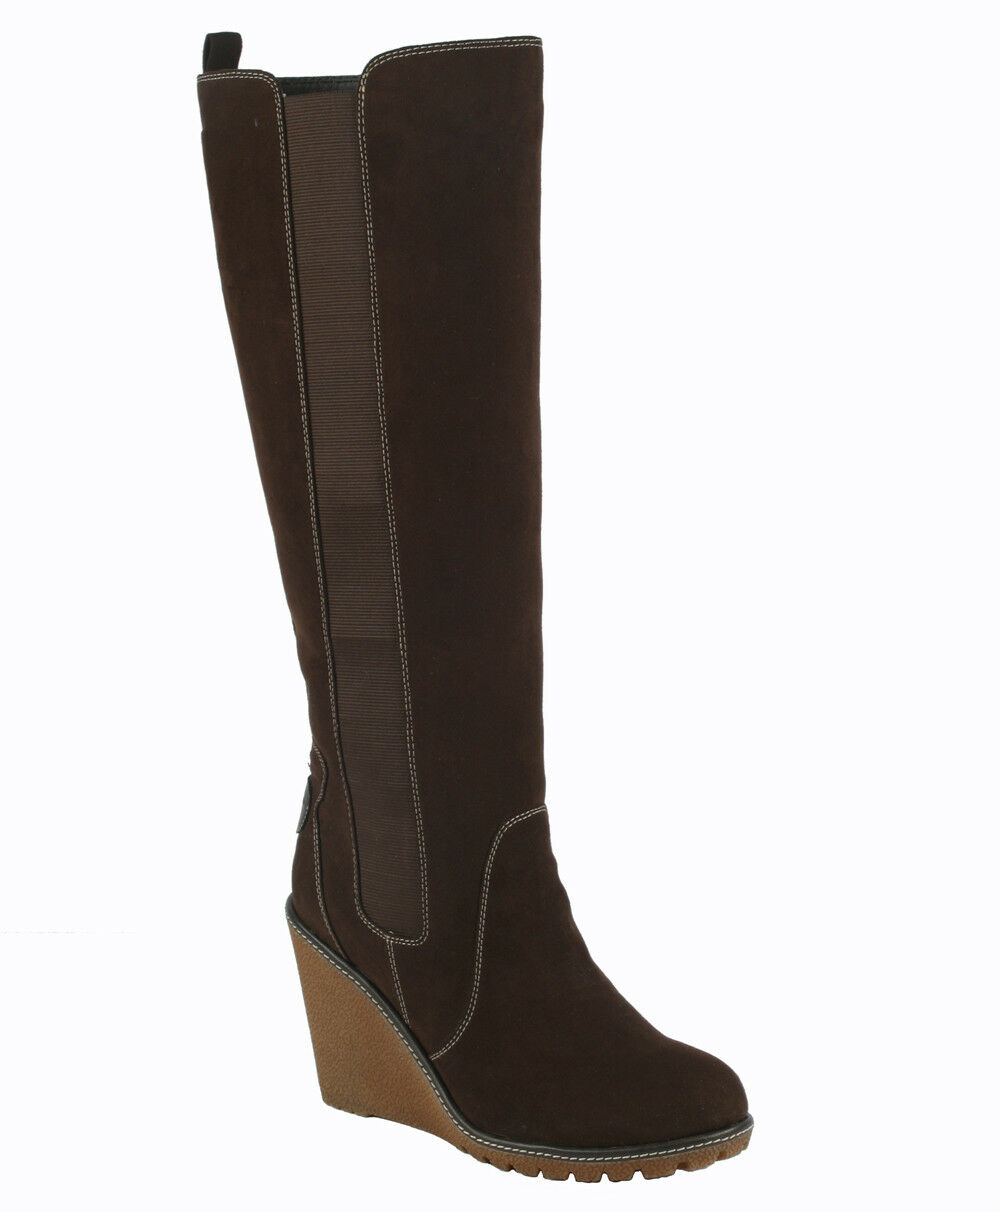 Pixie Footwear Ruby Ladies Boots. UK sizes sizes sizes 3 - 8 Brand New In Box ee9244